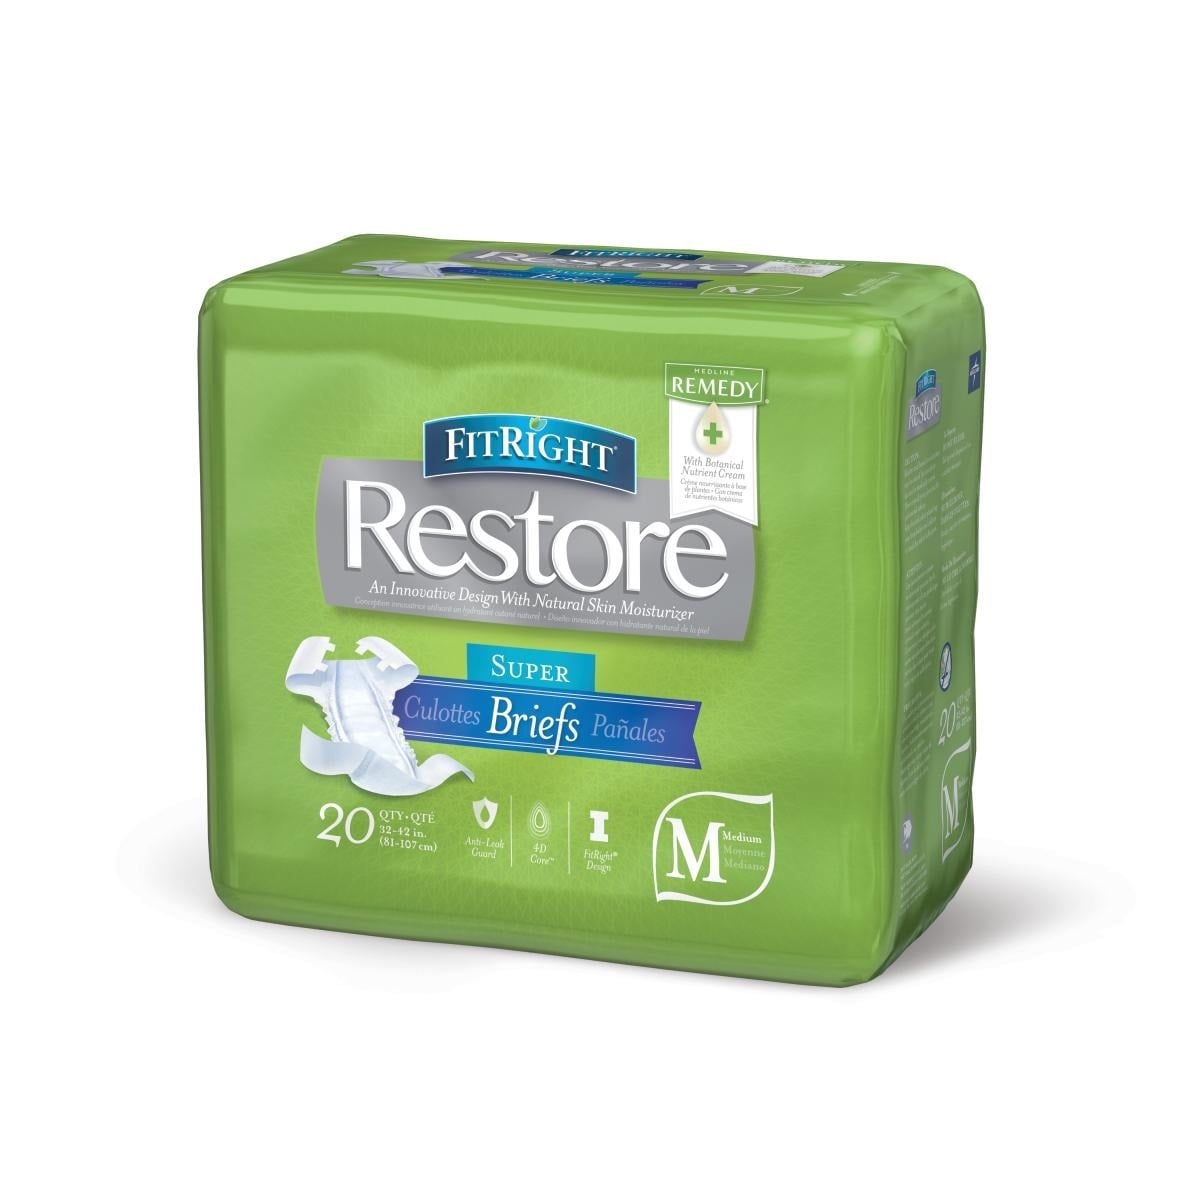 medline FitRight Restore Briefs with Remedy Skin Repair C...